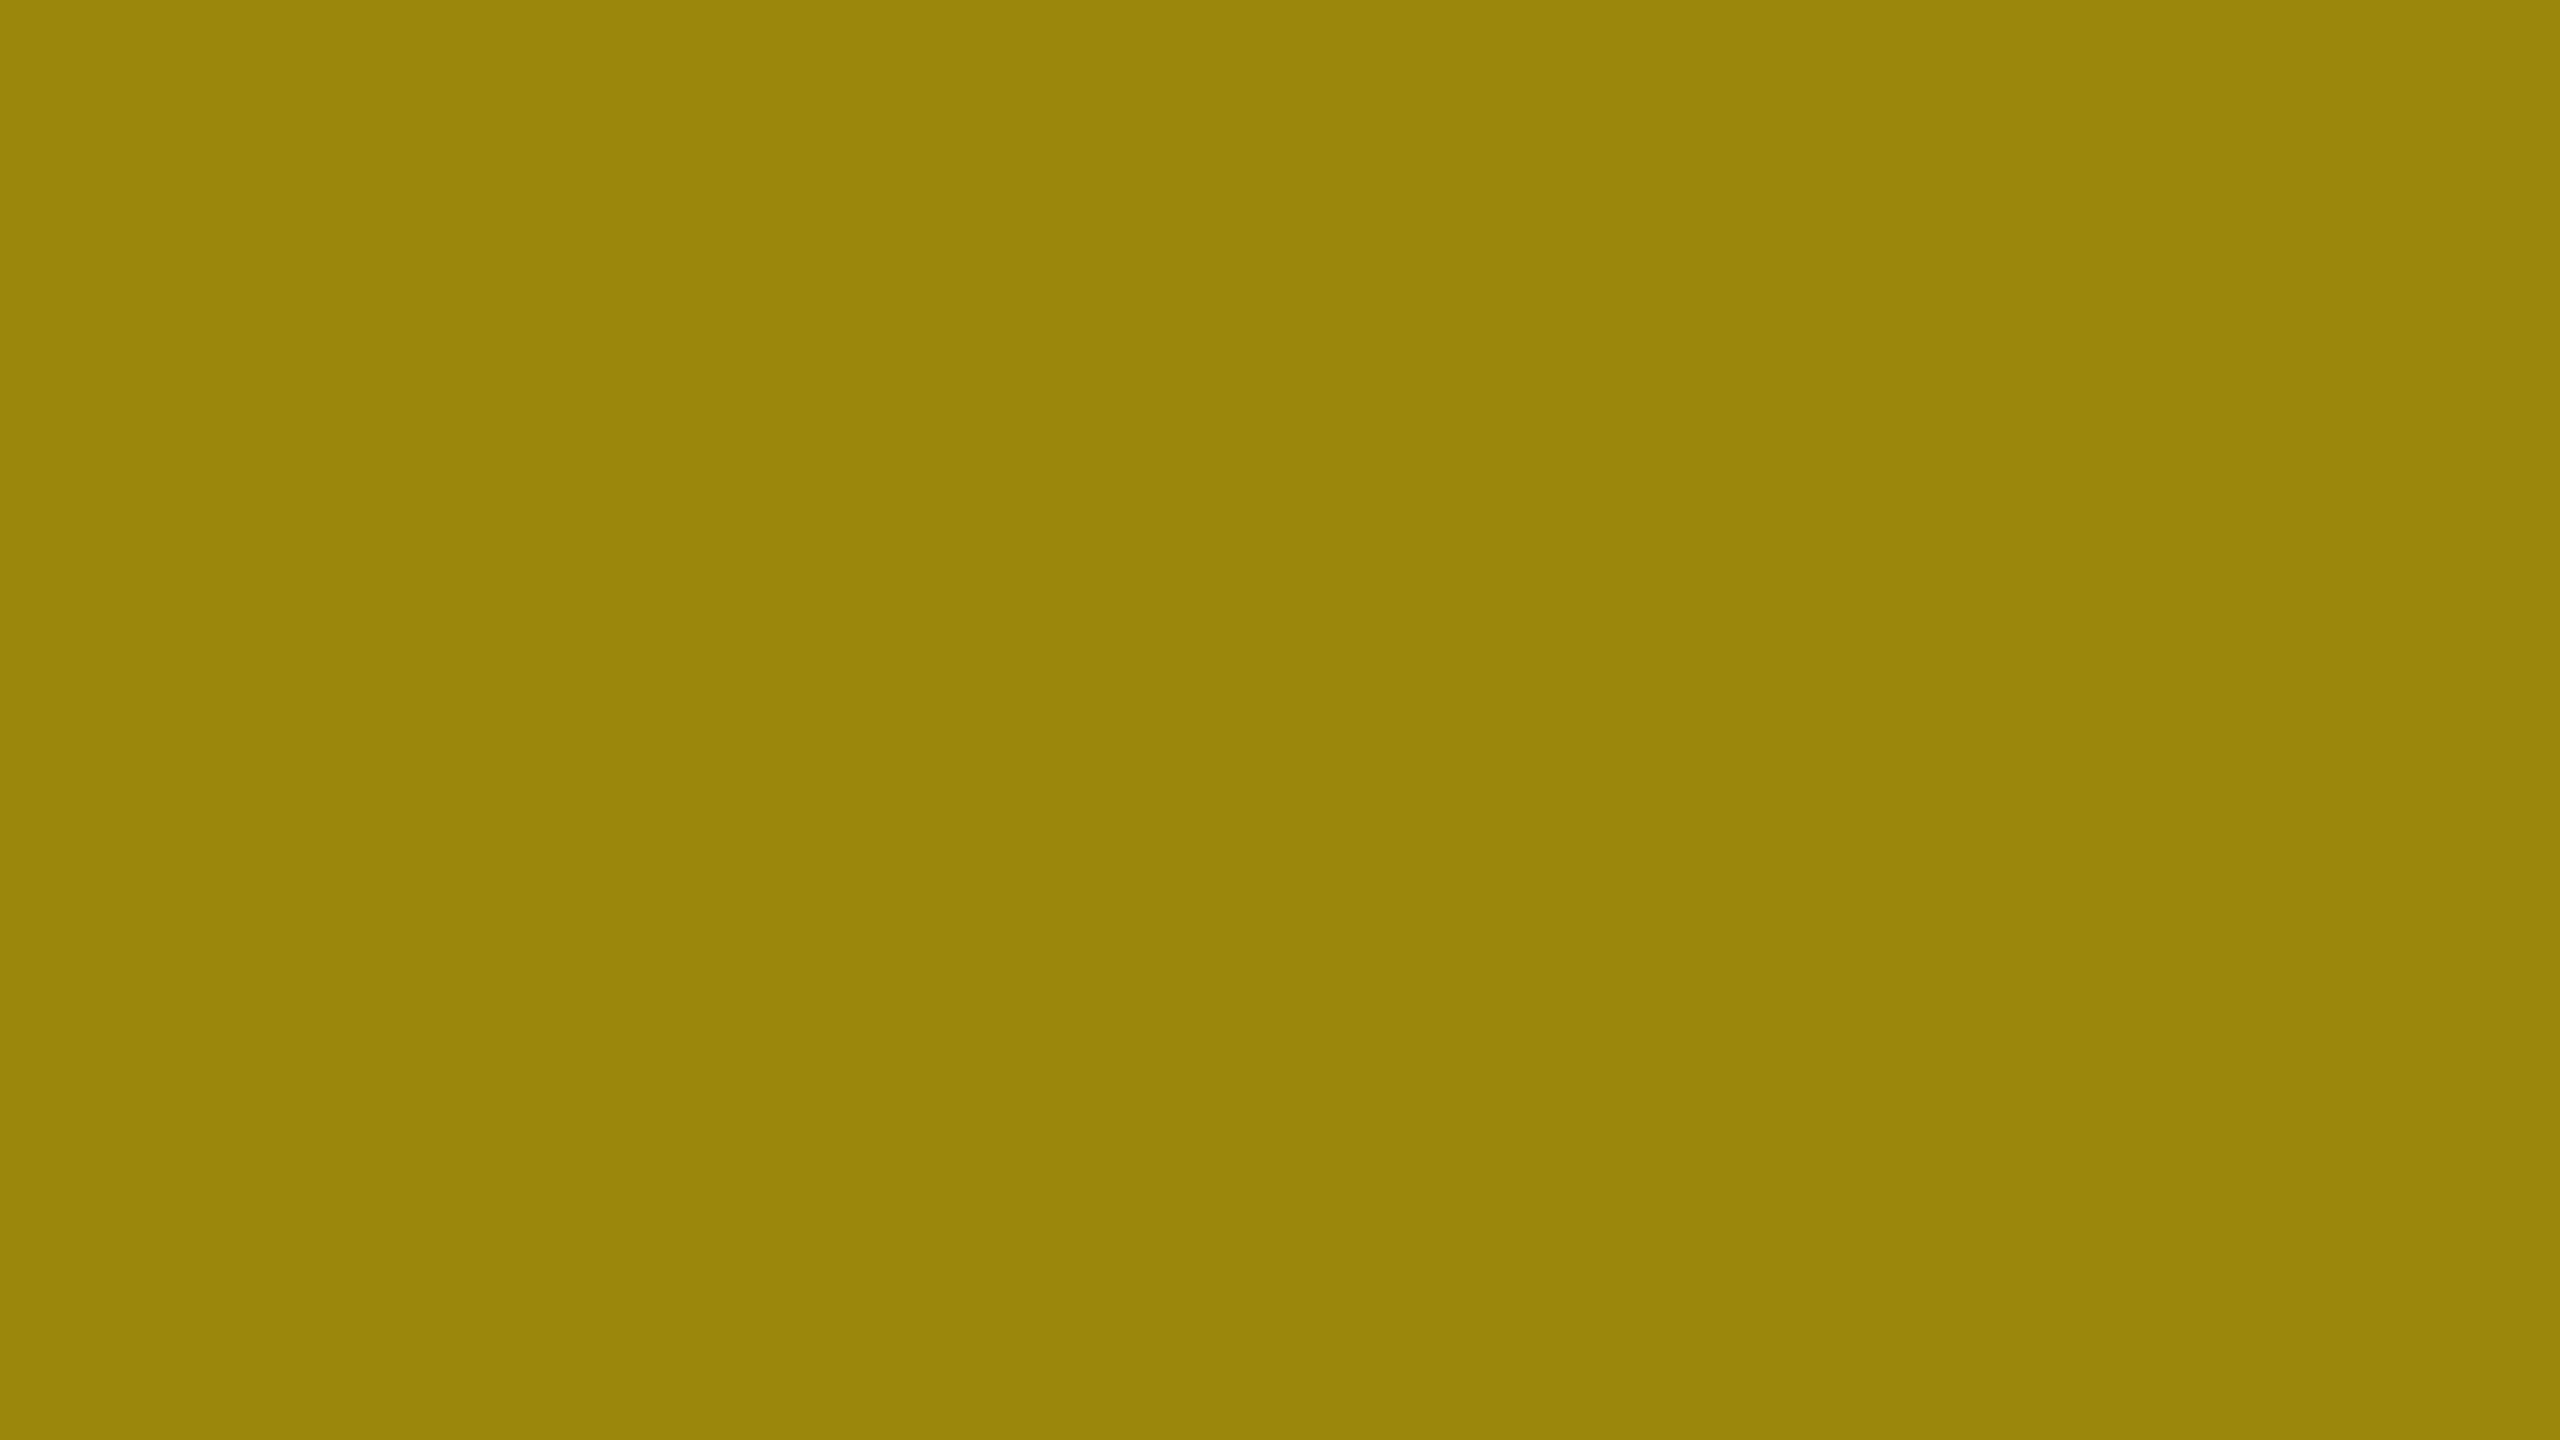 how to make dark yellow color